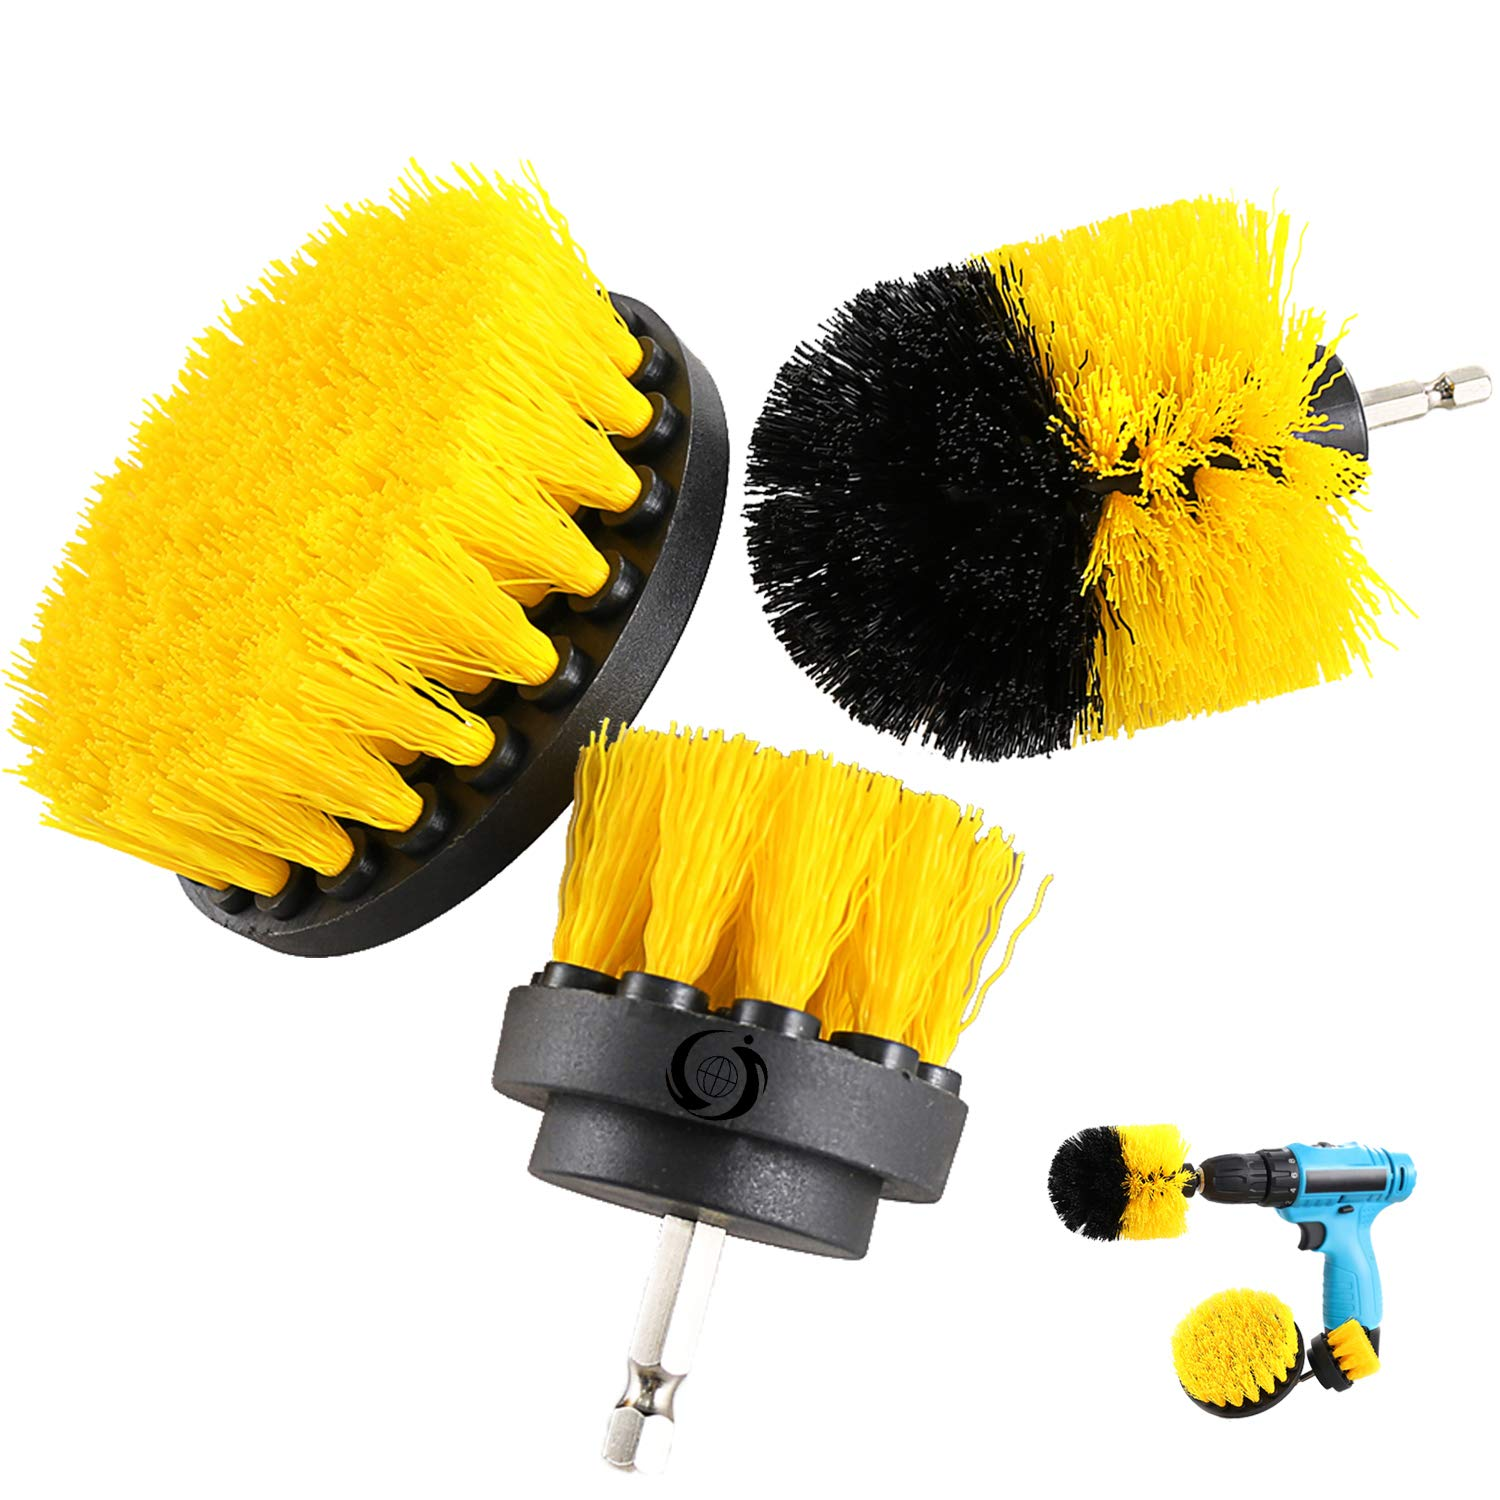 Drill Brush Attachment Kits, 3 Pieces Cleaner Scrubbing Brushes for All Purpose Bathroom Surface, Grout, Tub, Shower, Kitchen (Yellow) HENGQIANG